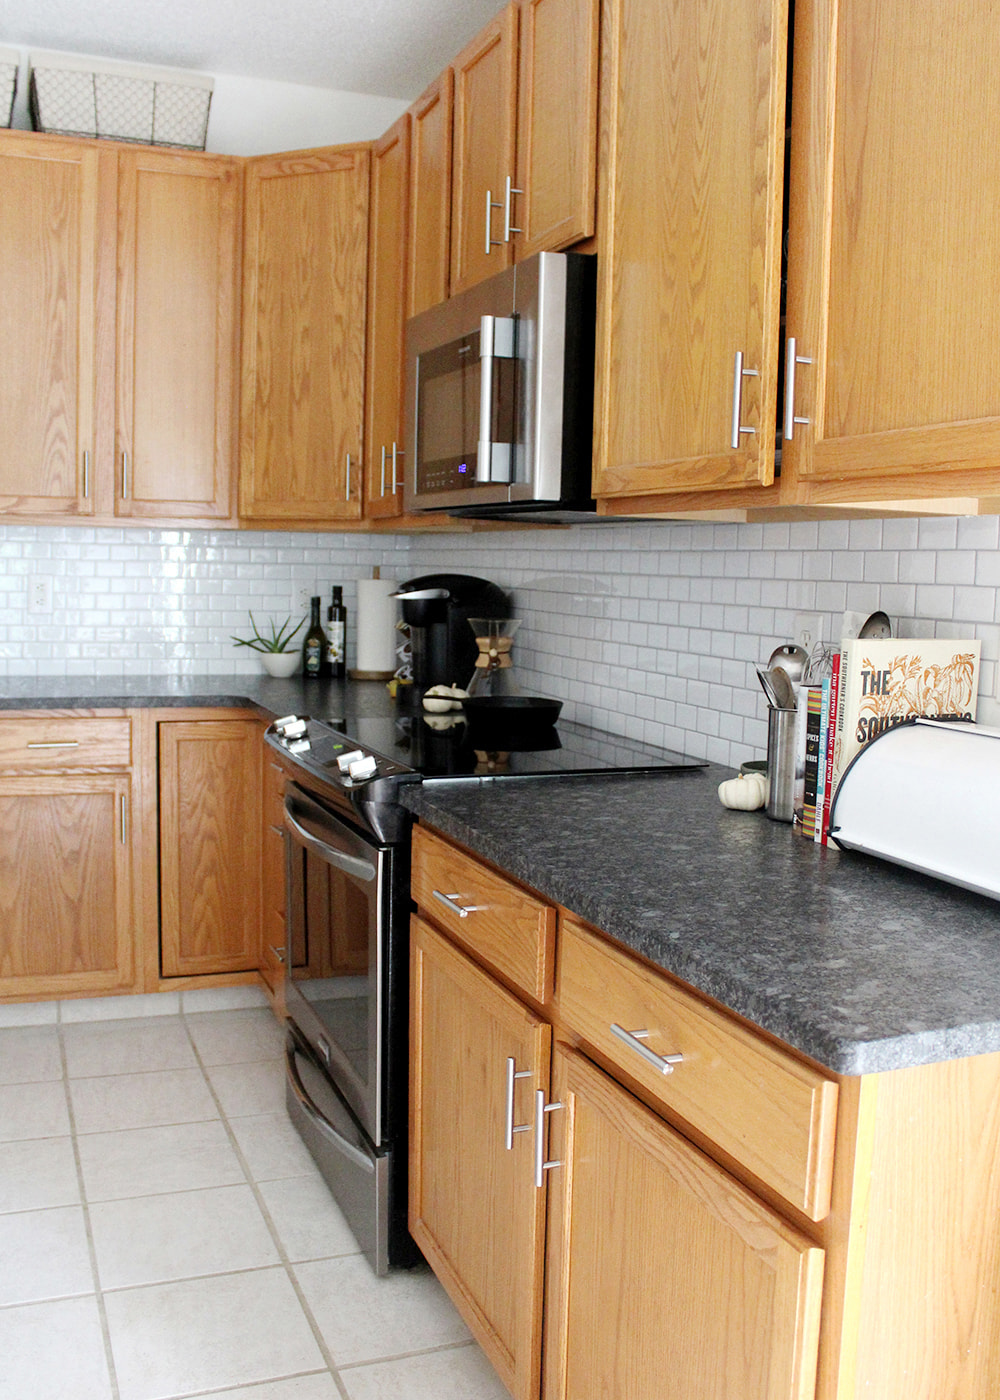 leathered granite countertops, why its a good fit for modern kitchens on a budget